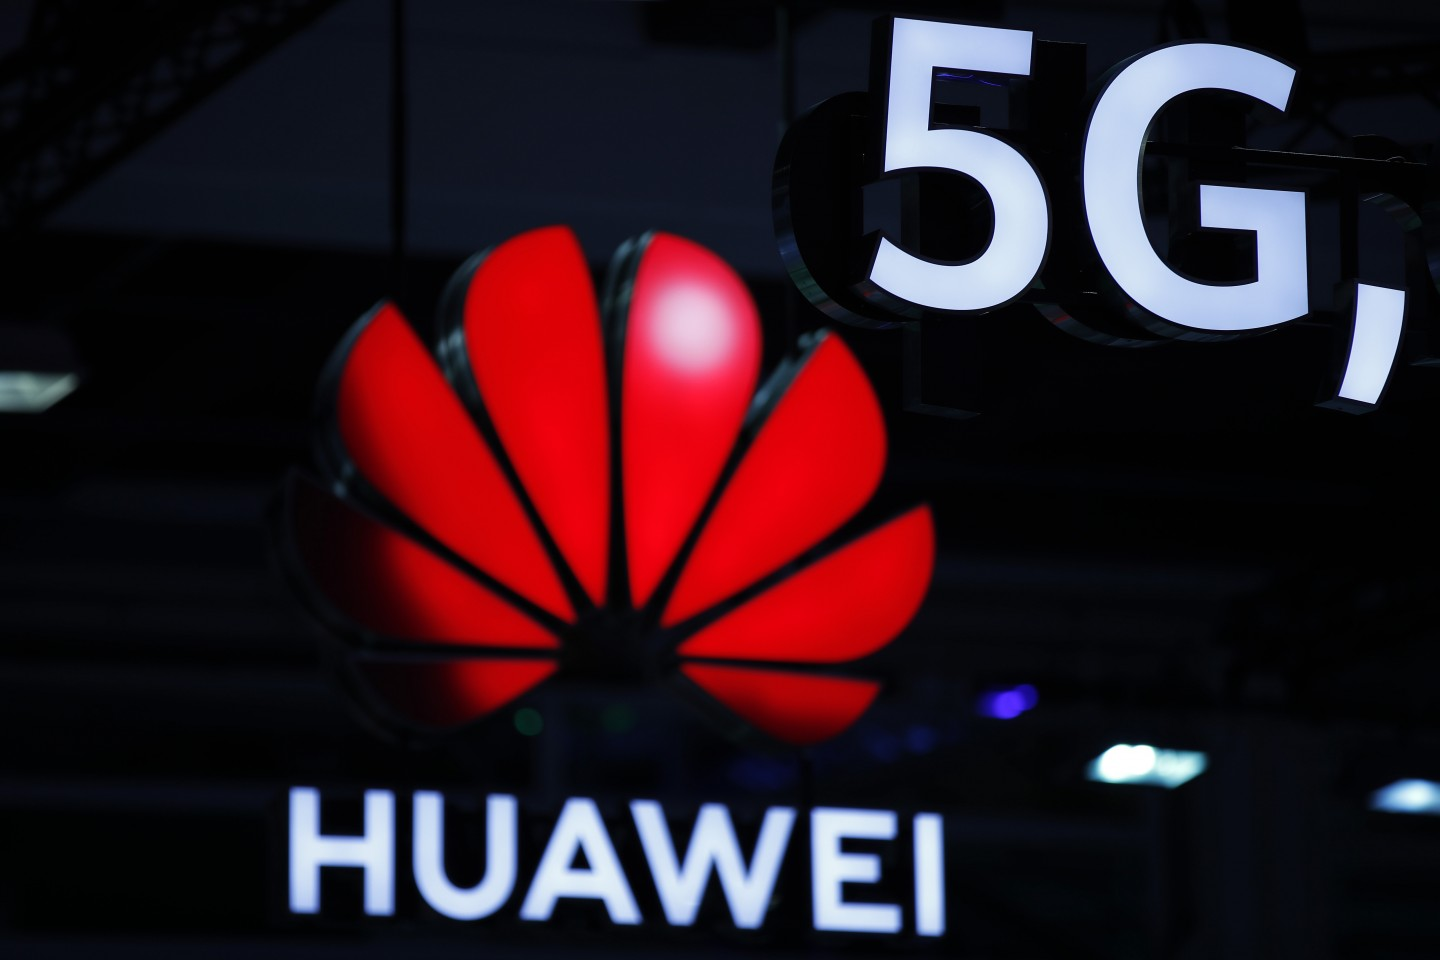 The US is in a global campaign to block the adoption of 5G wireless technology made by Chinese telecom giant Huawei. (Stefan Wermuth/AFP)